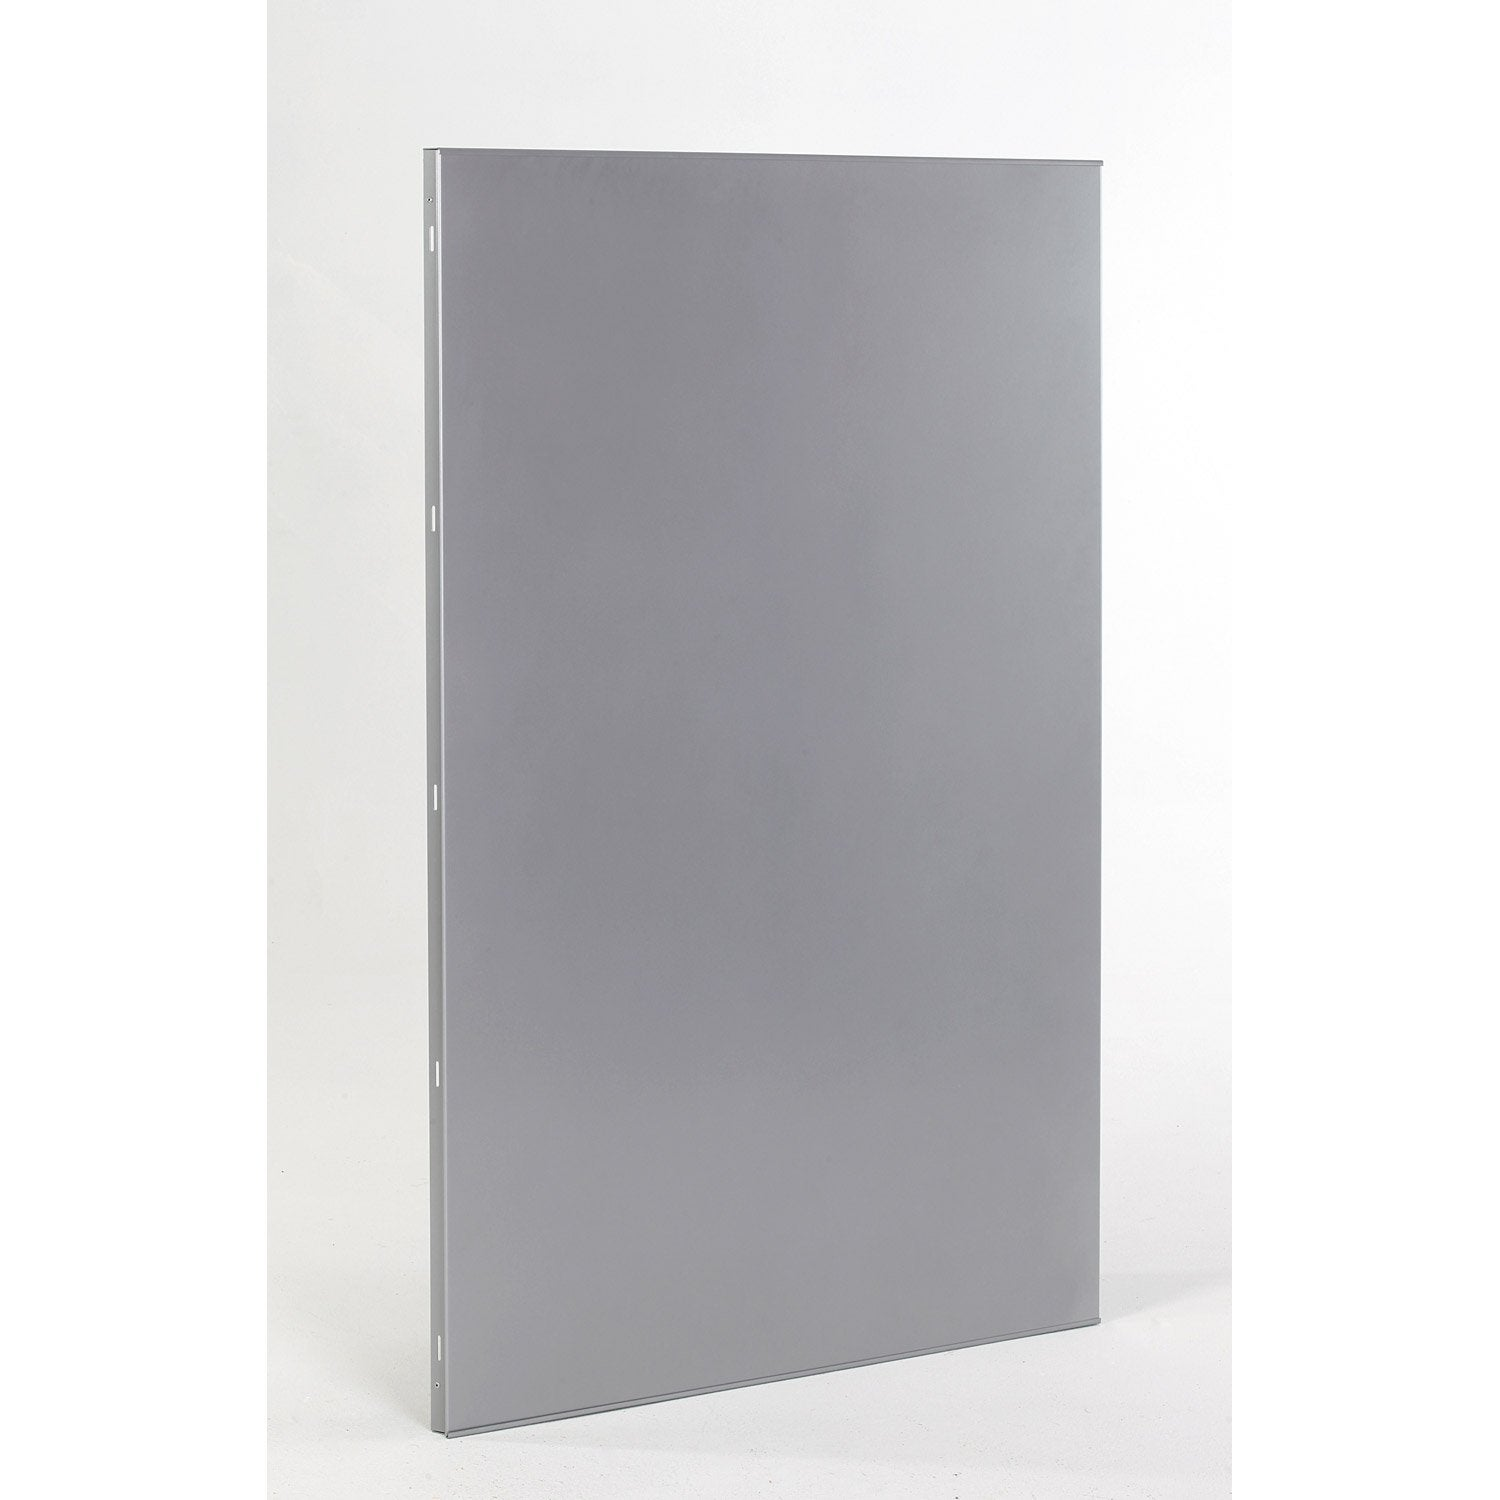 Plaque protection murale acier gris aluminium atelier dix - Protege plaque induction leroy merlin ...